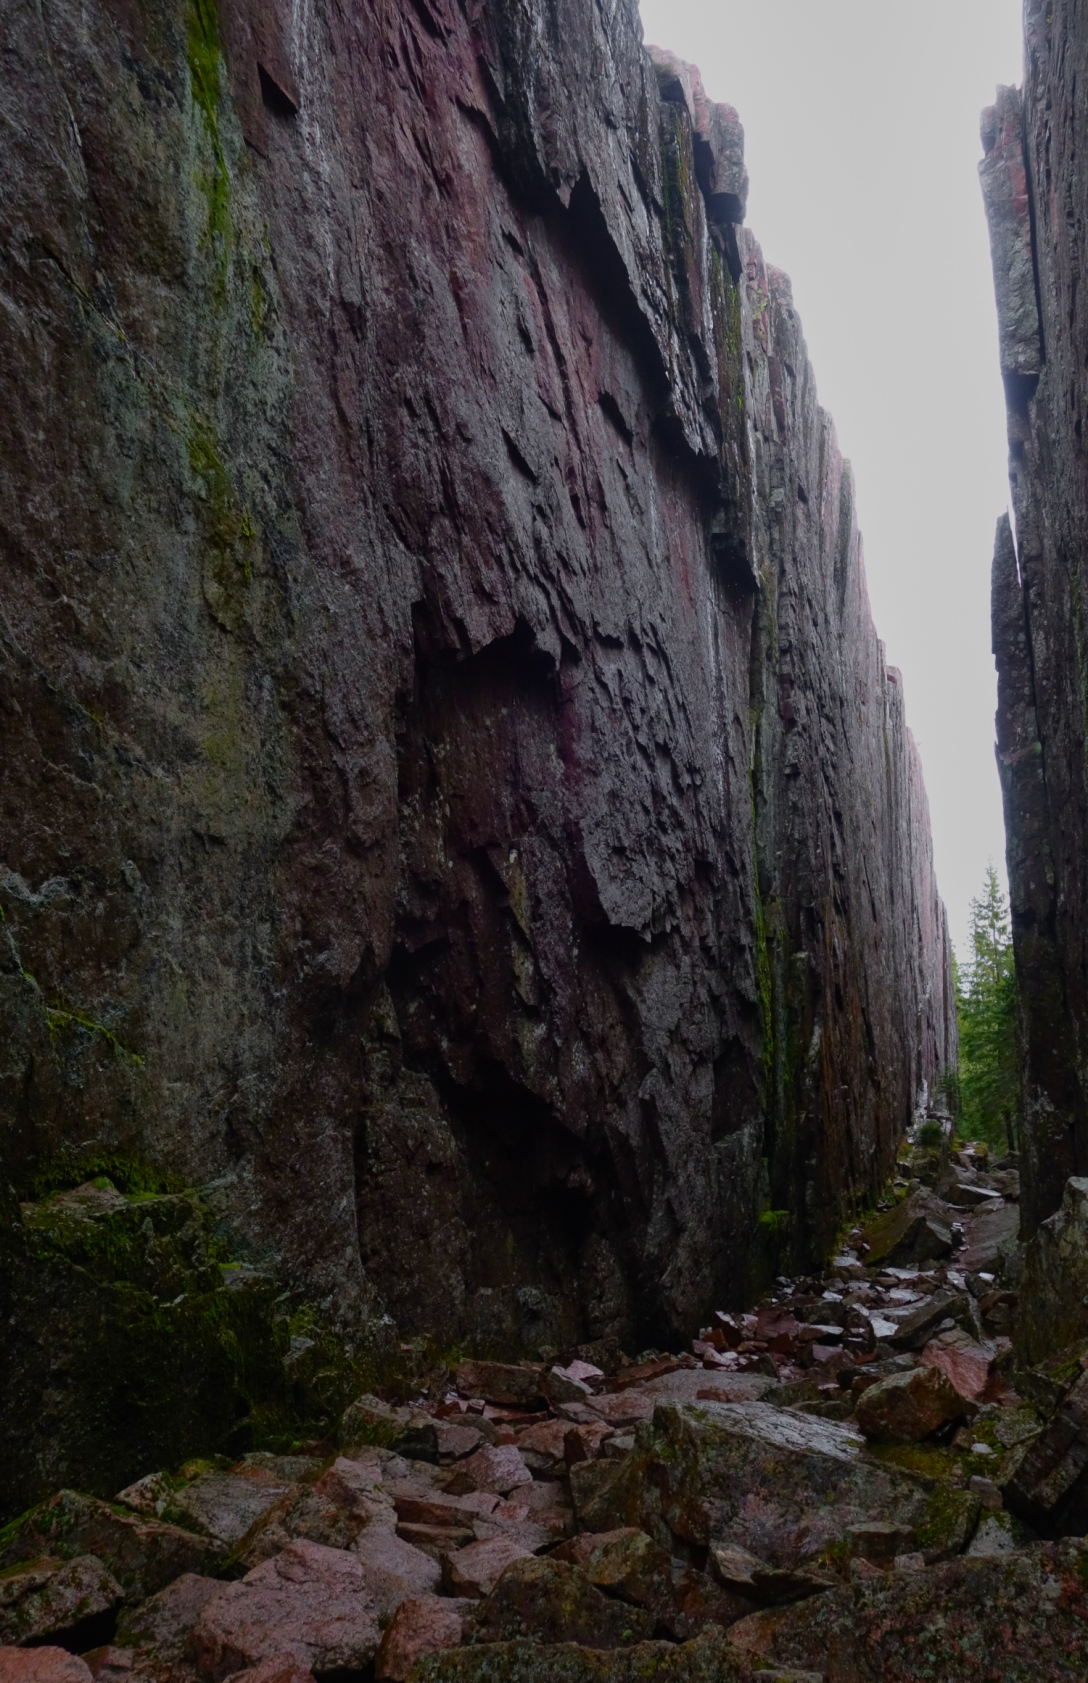 Wet cliff walls